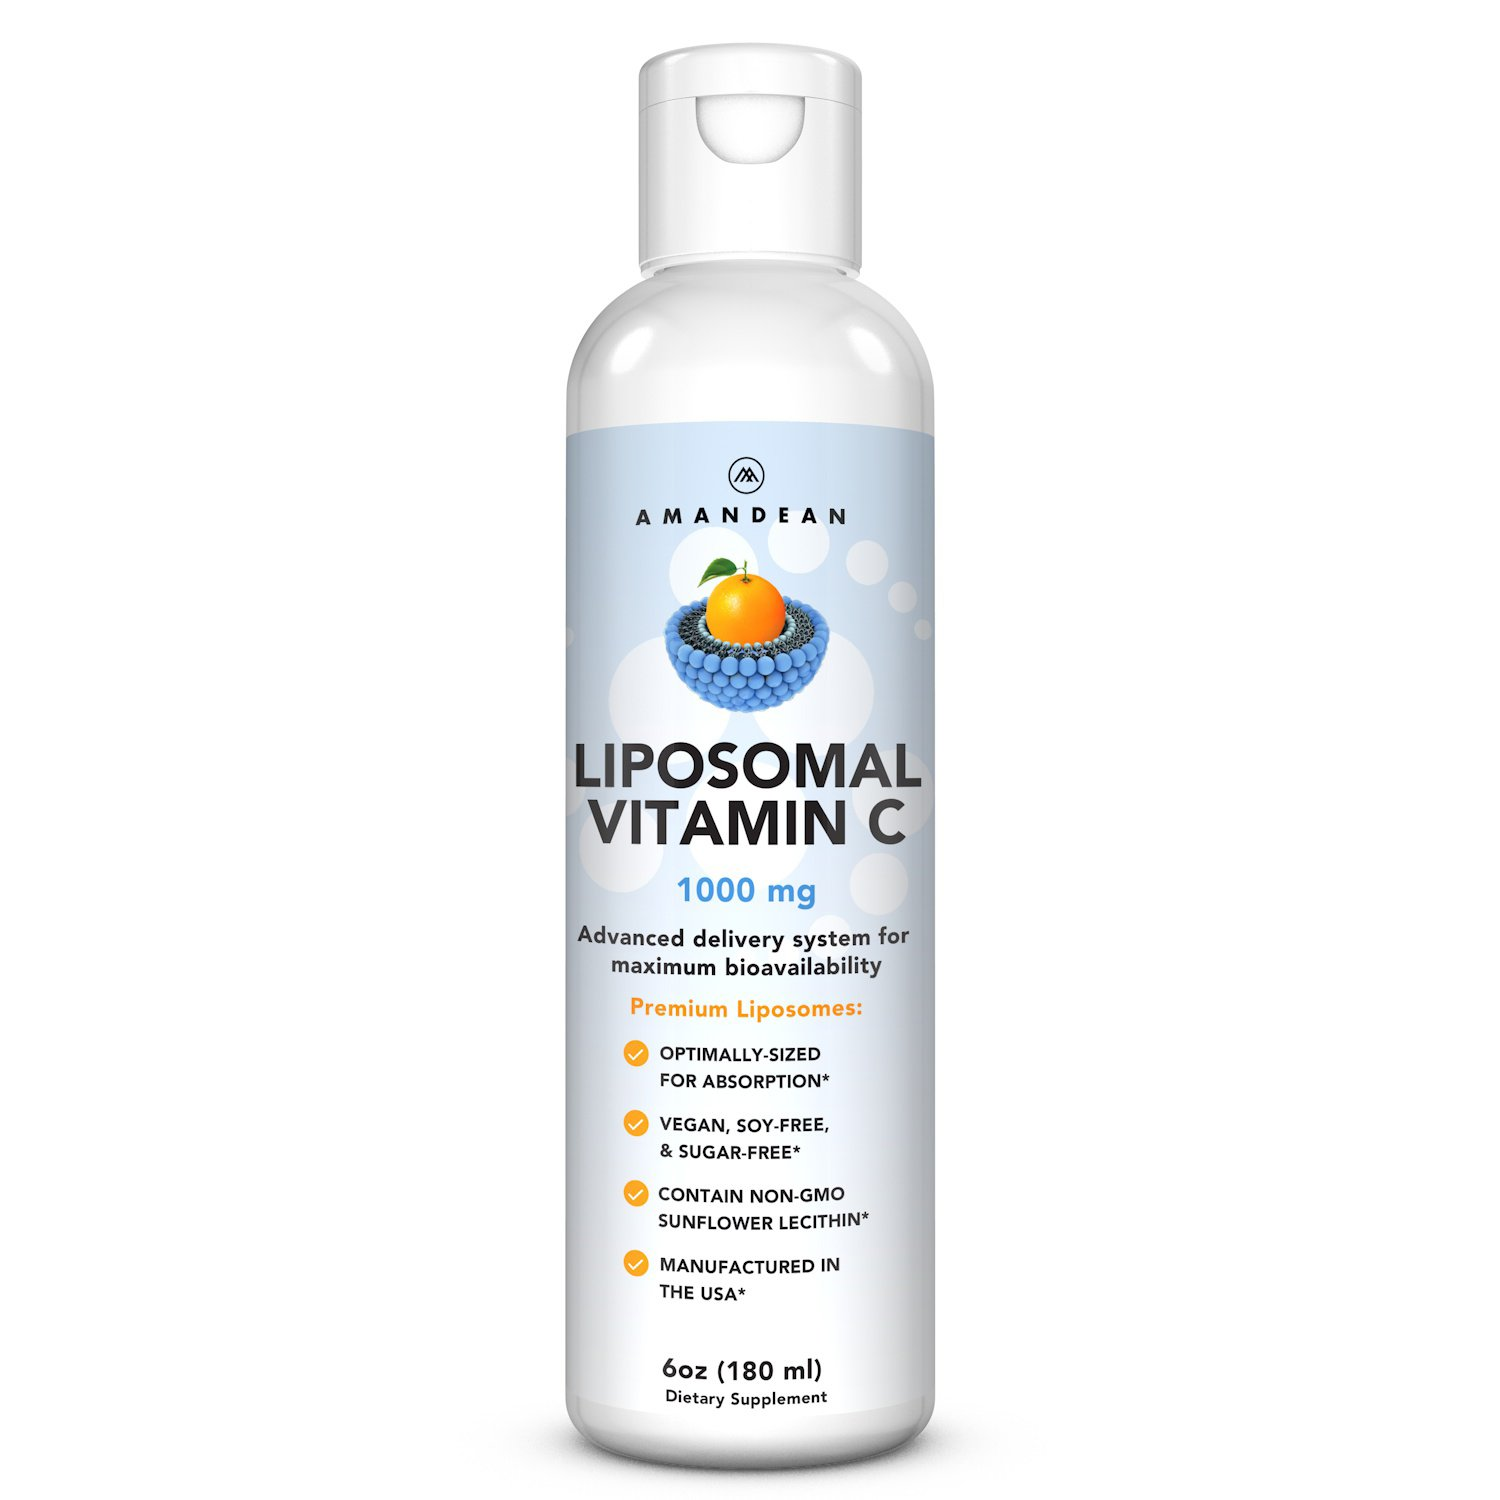 Liposomal Vitamin C 1000mg - Advanced Delivery System for Maximum Bioavailability. Supports Immunity, Promotes Skin Health & Collagen Production, Fast Absorbing, Non-GMO Tested. Soy Free Formula.